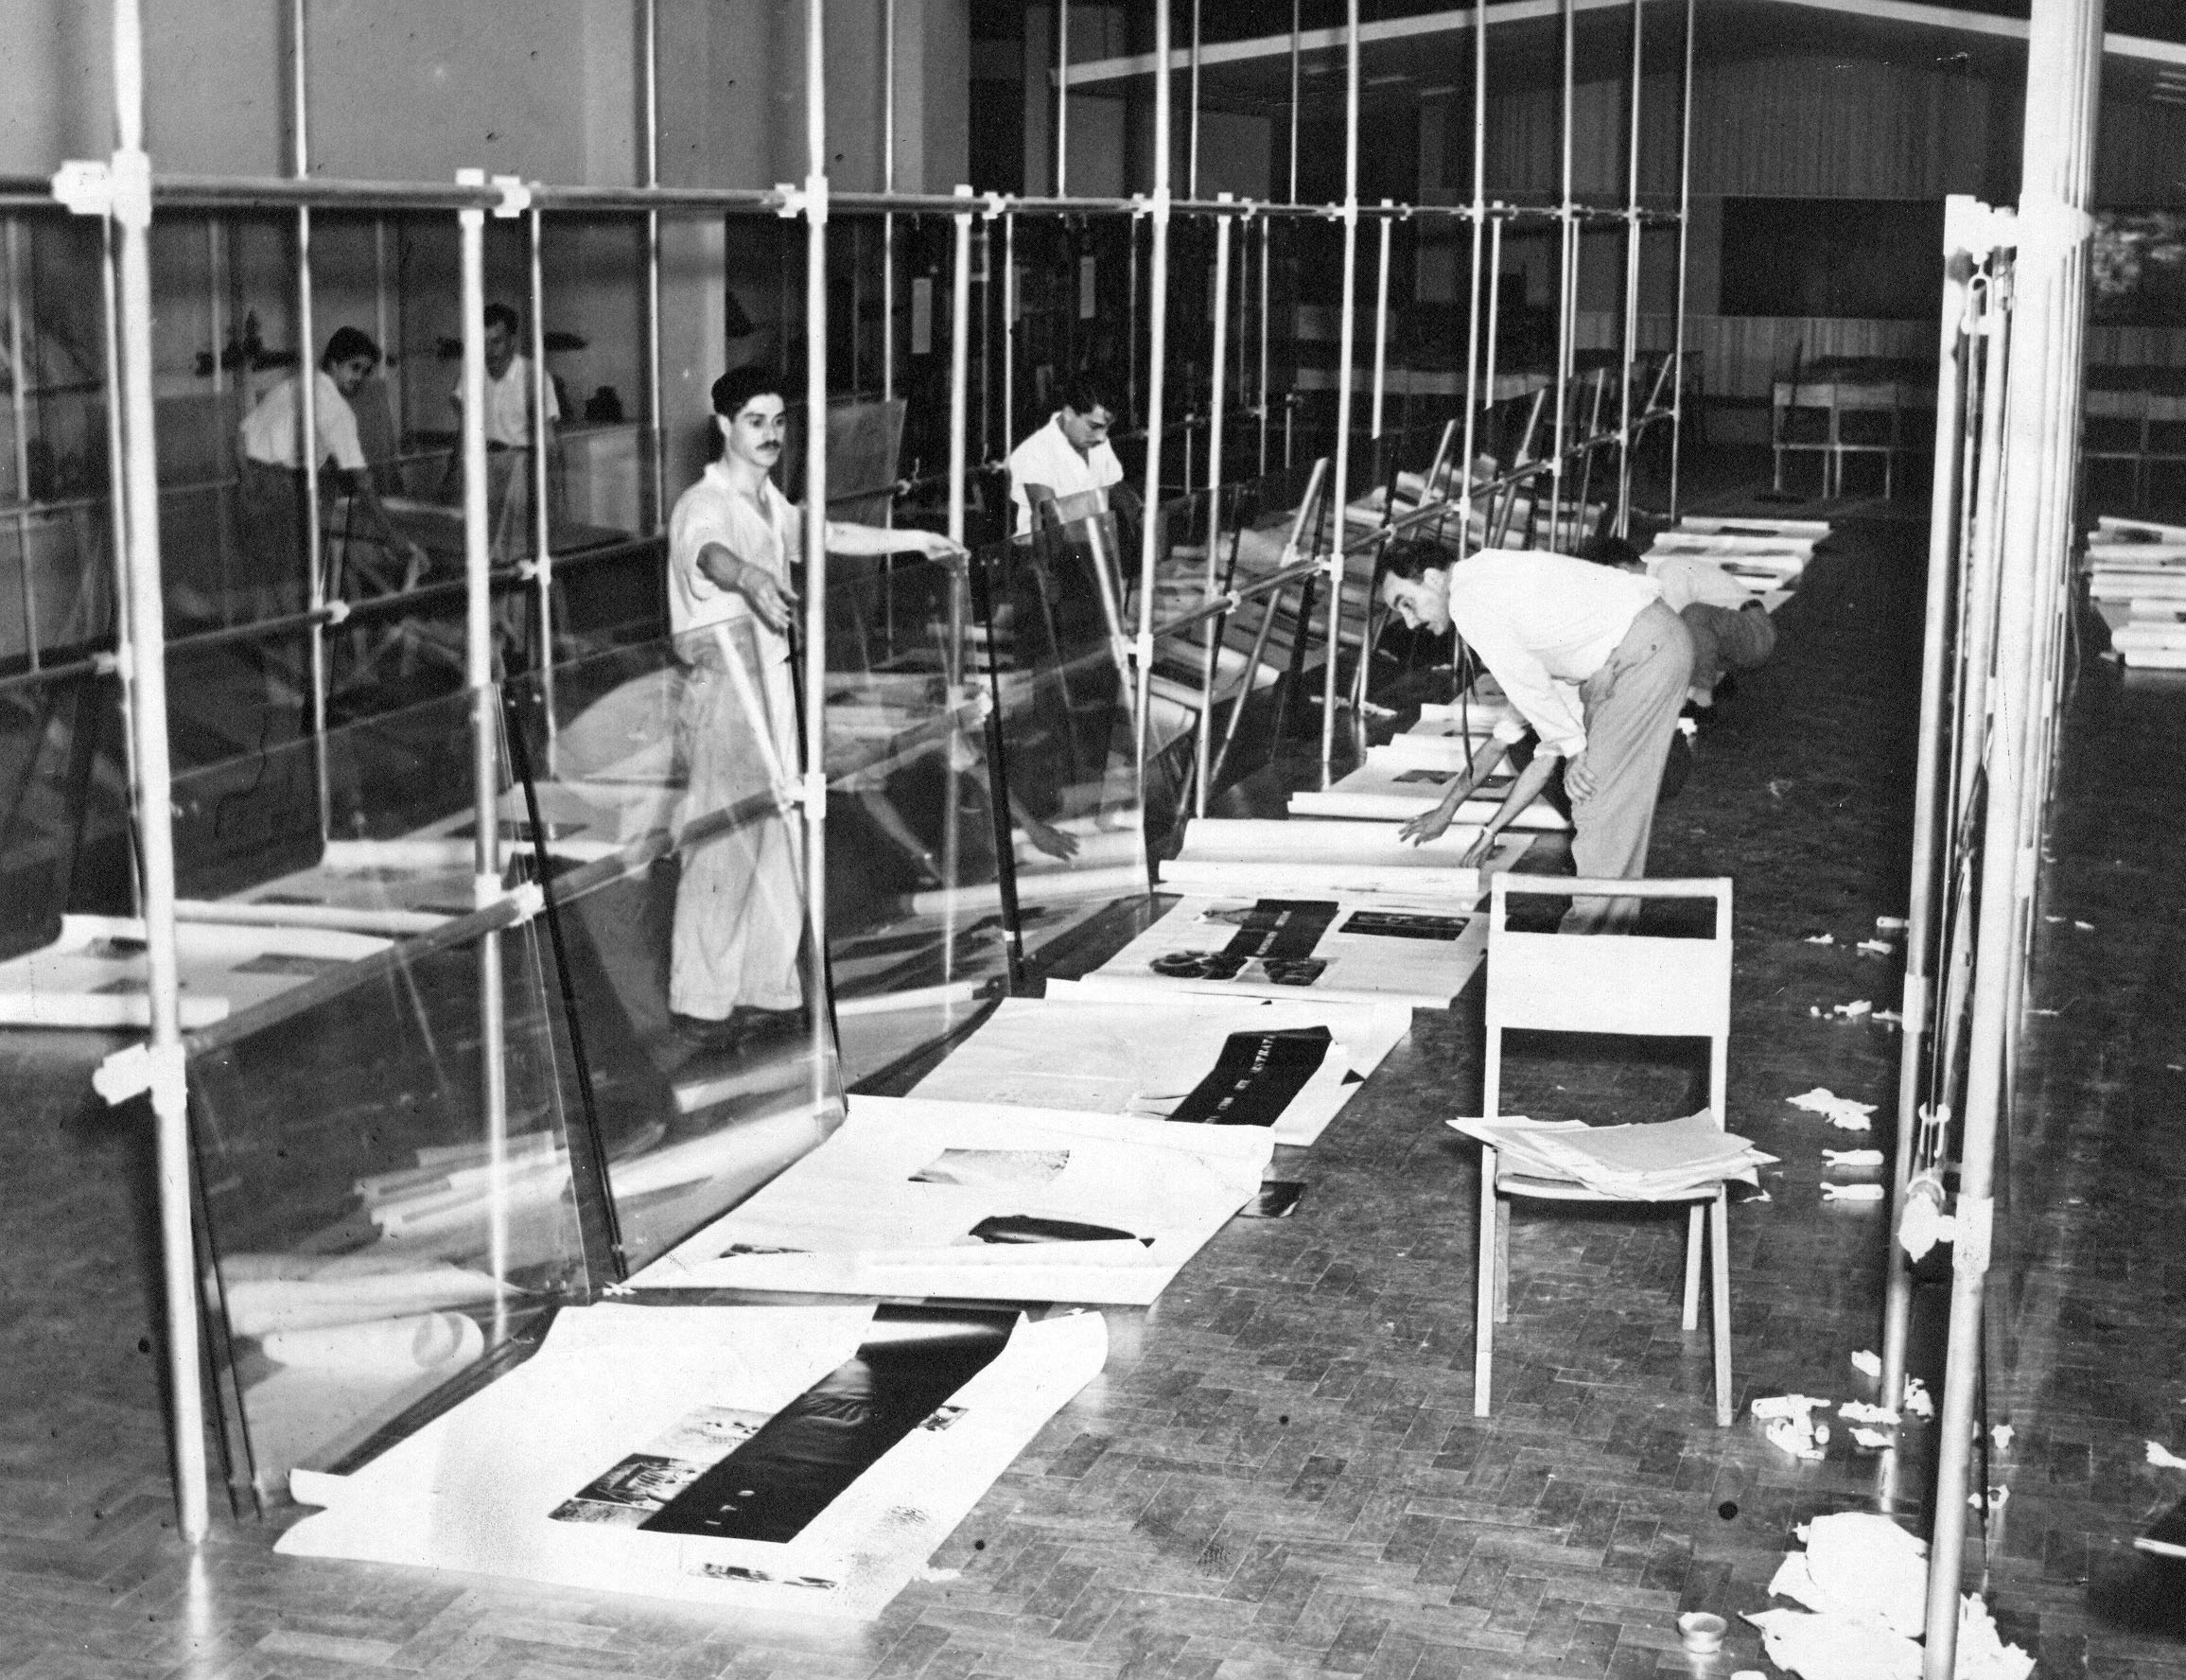 Installation of didactic exhibition, 1947.